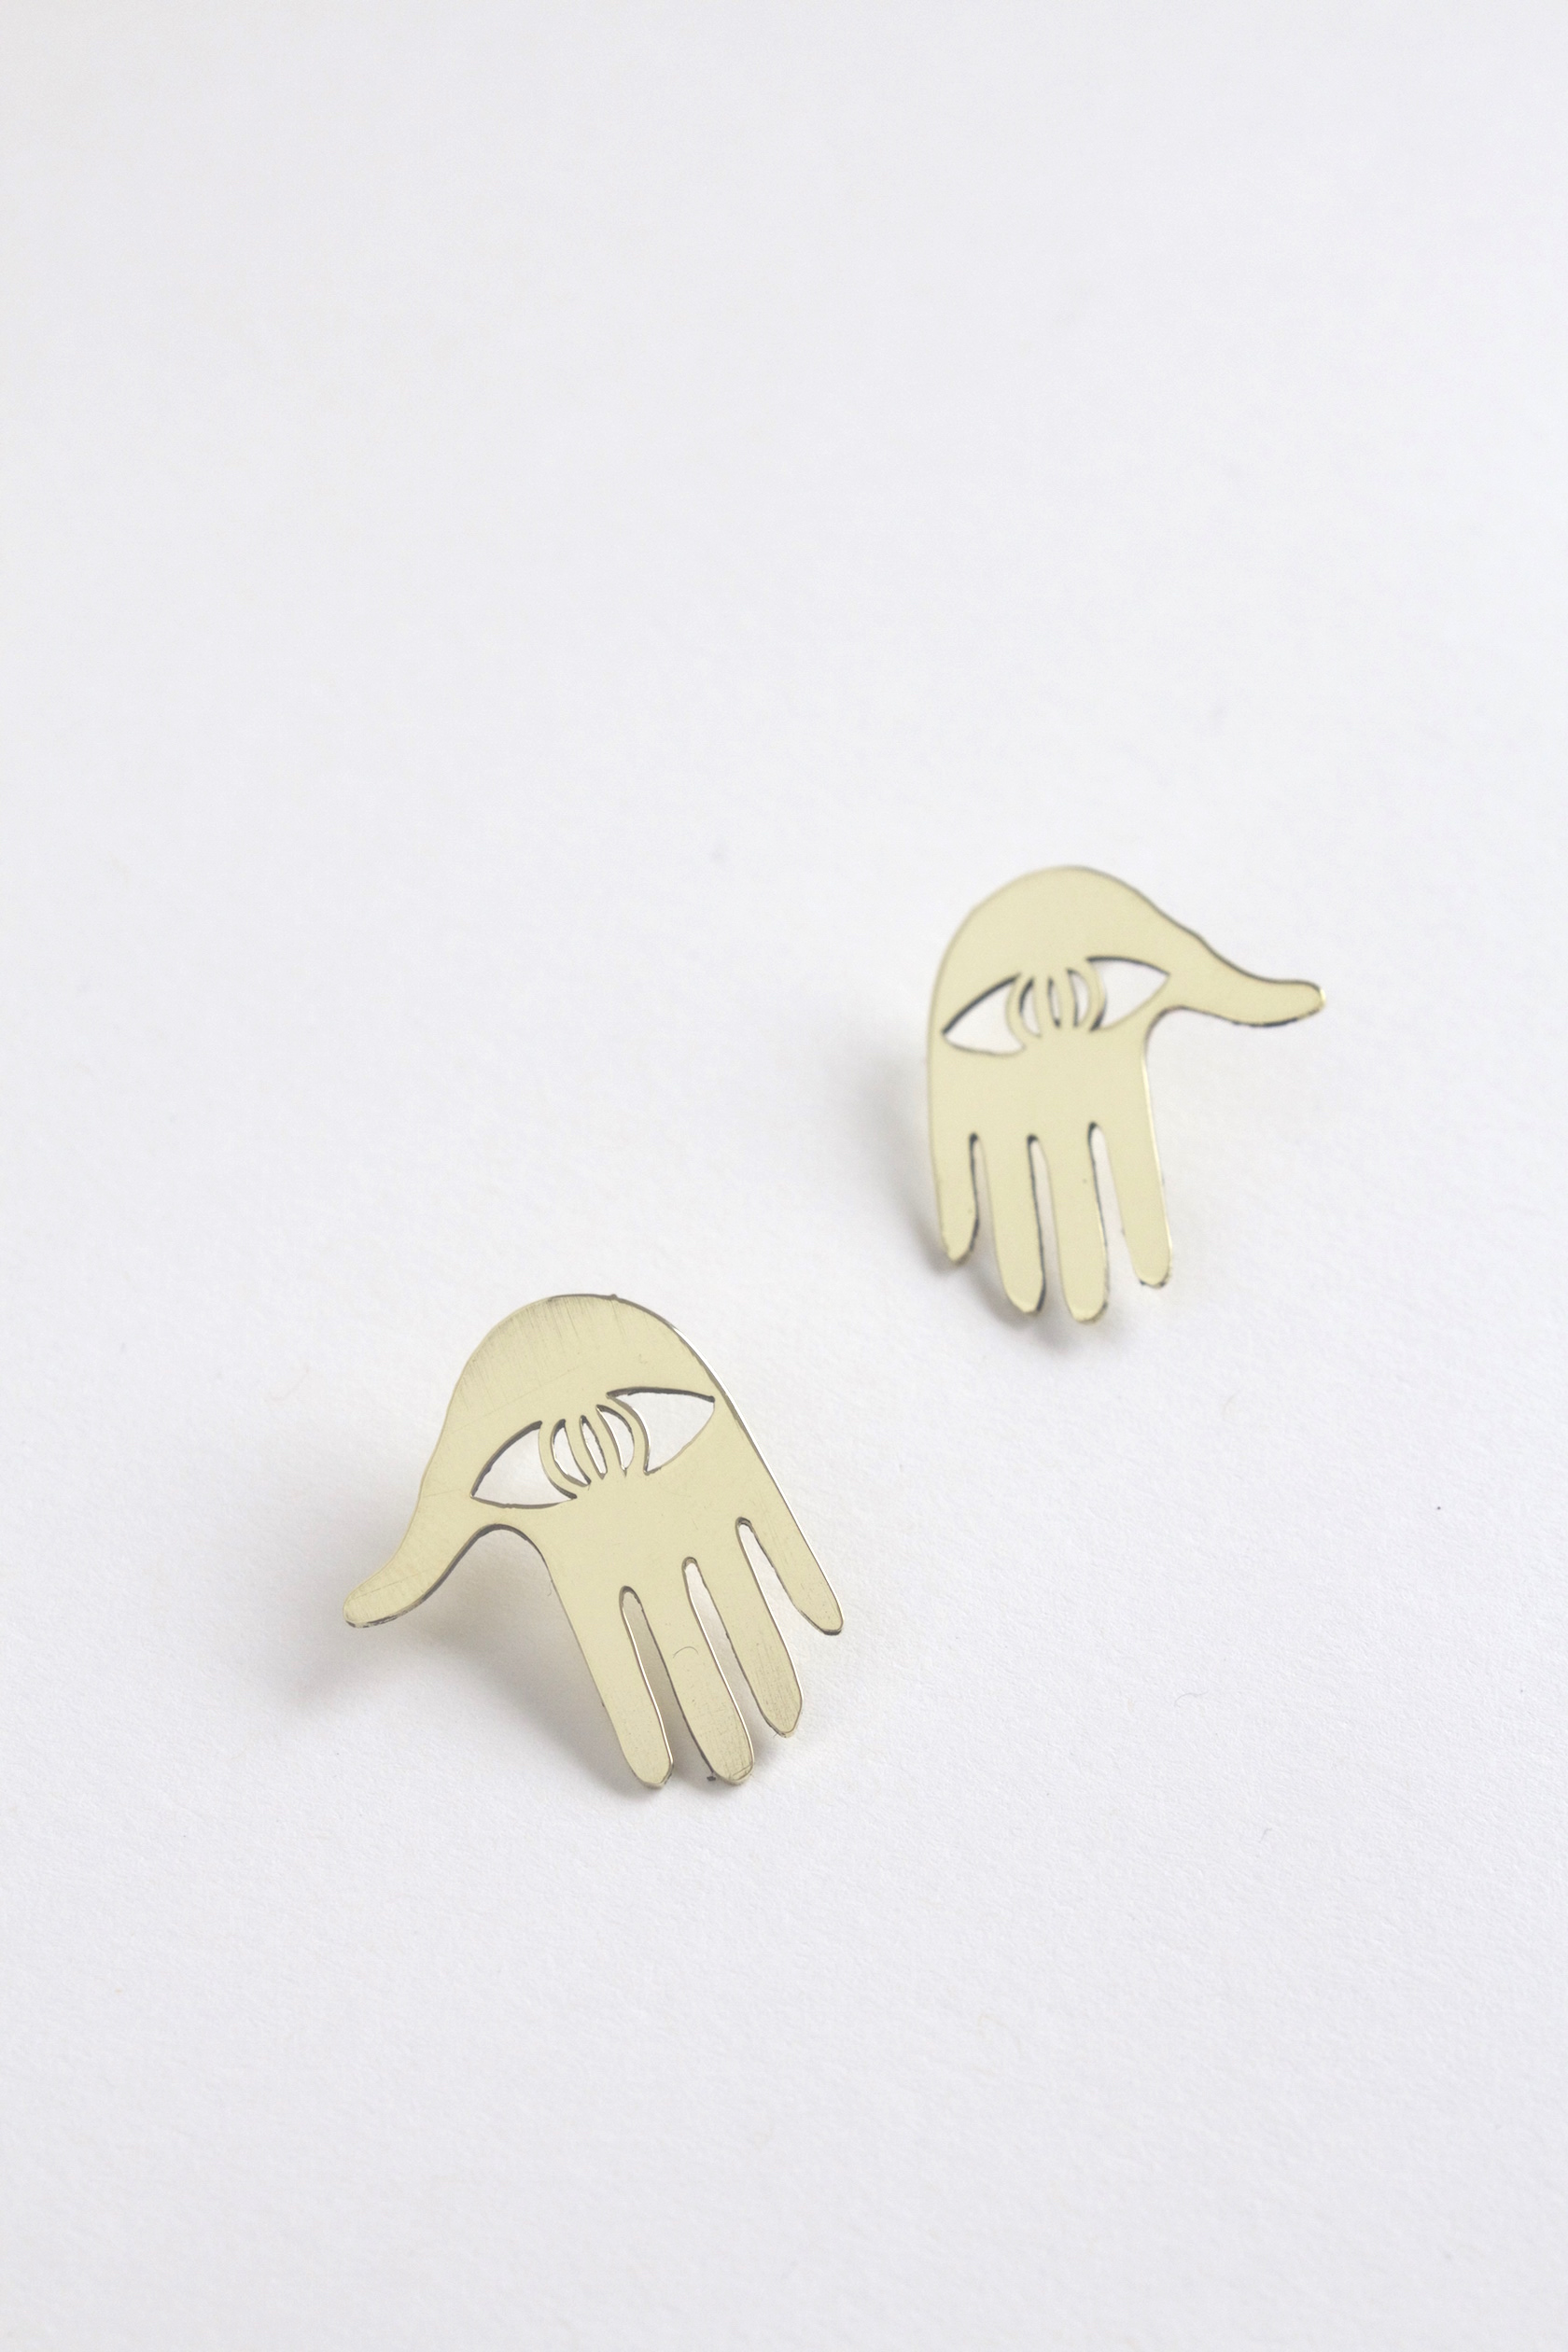 A cut-out hand/eye earring.